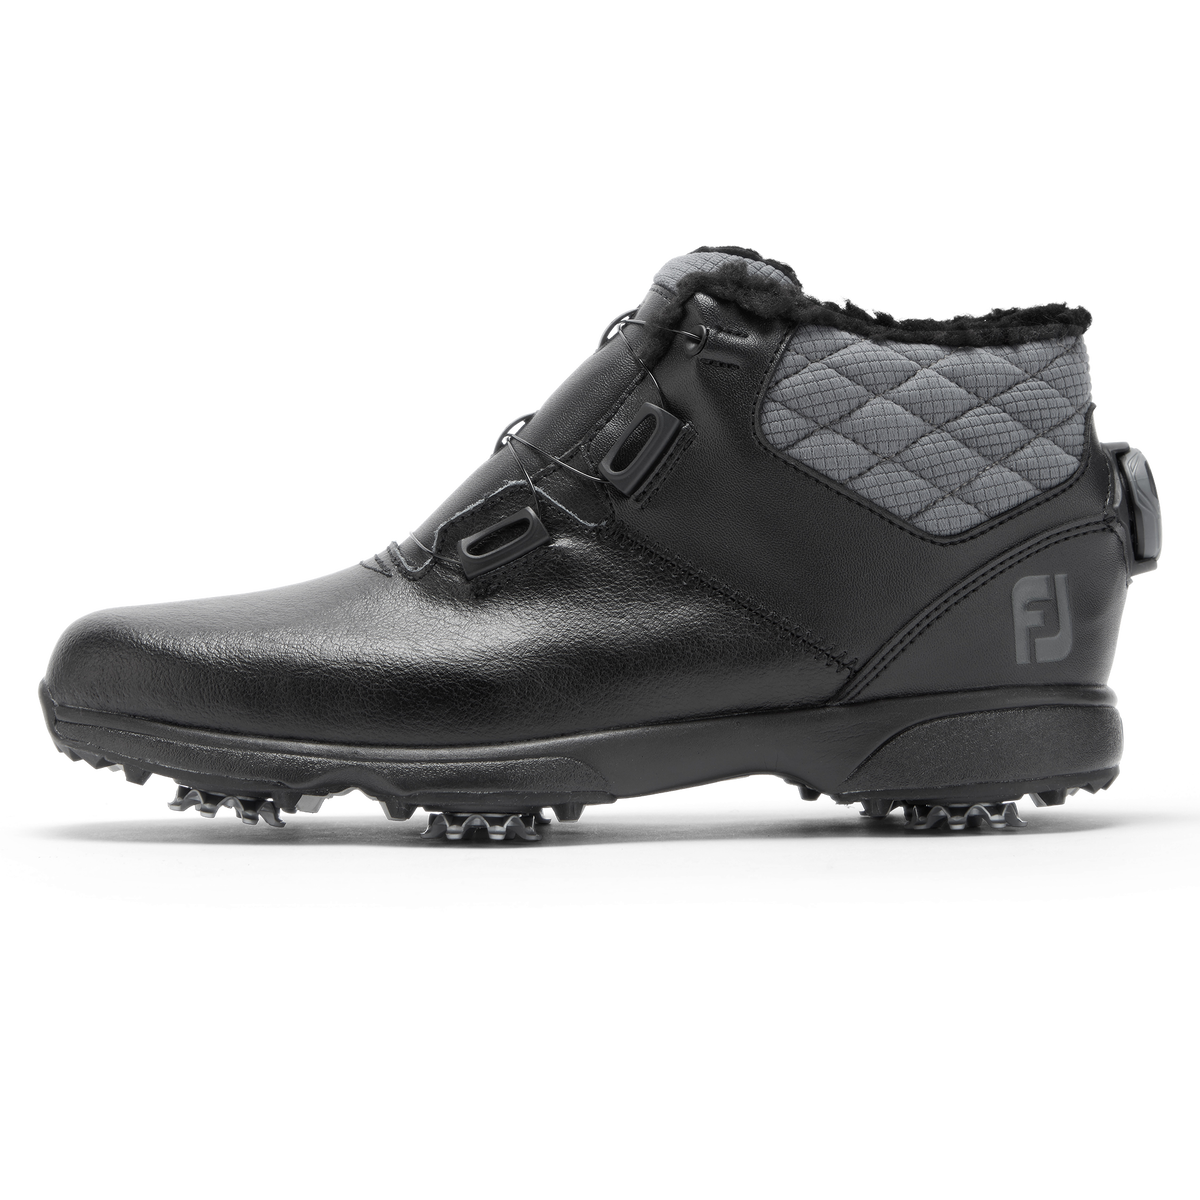 FJ Winter Boot BOA Dam